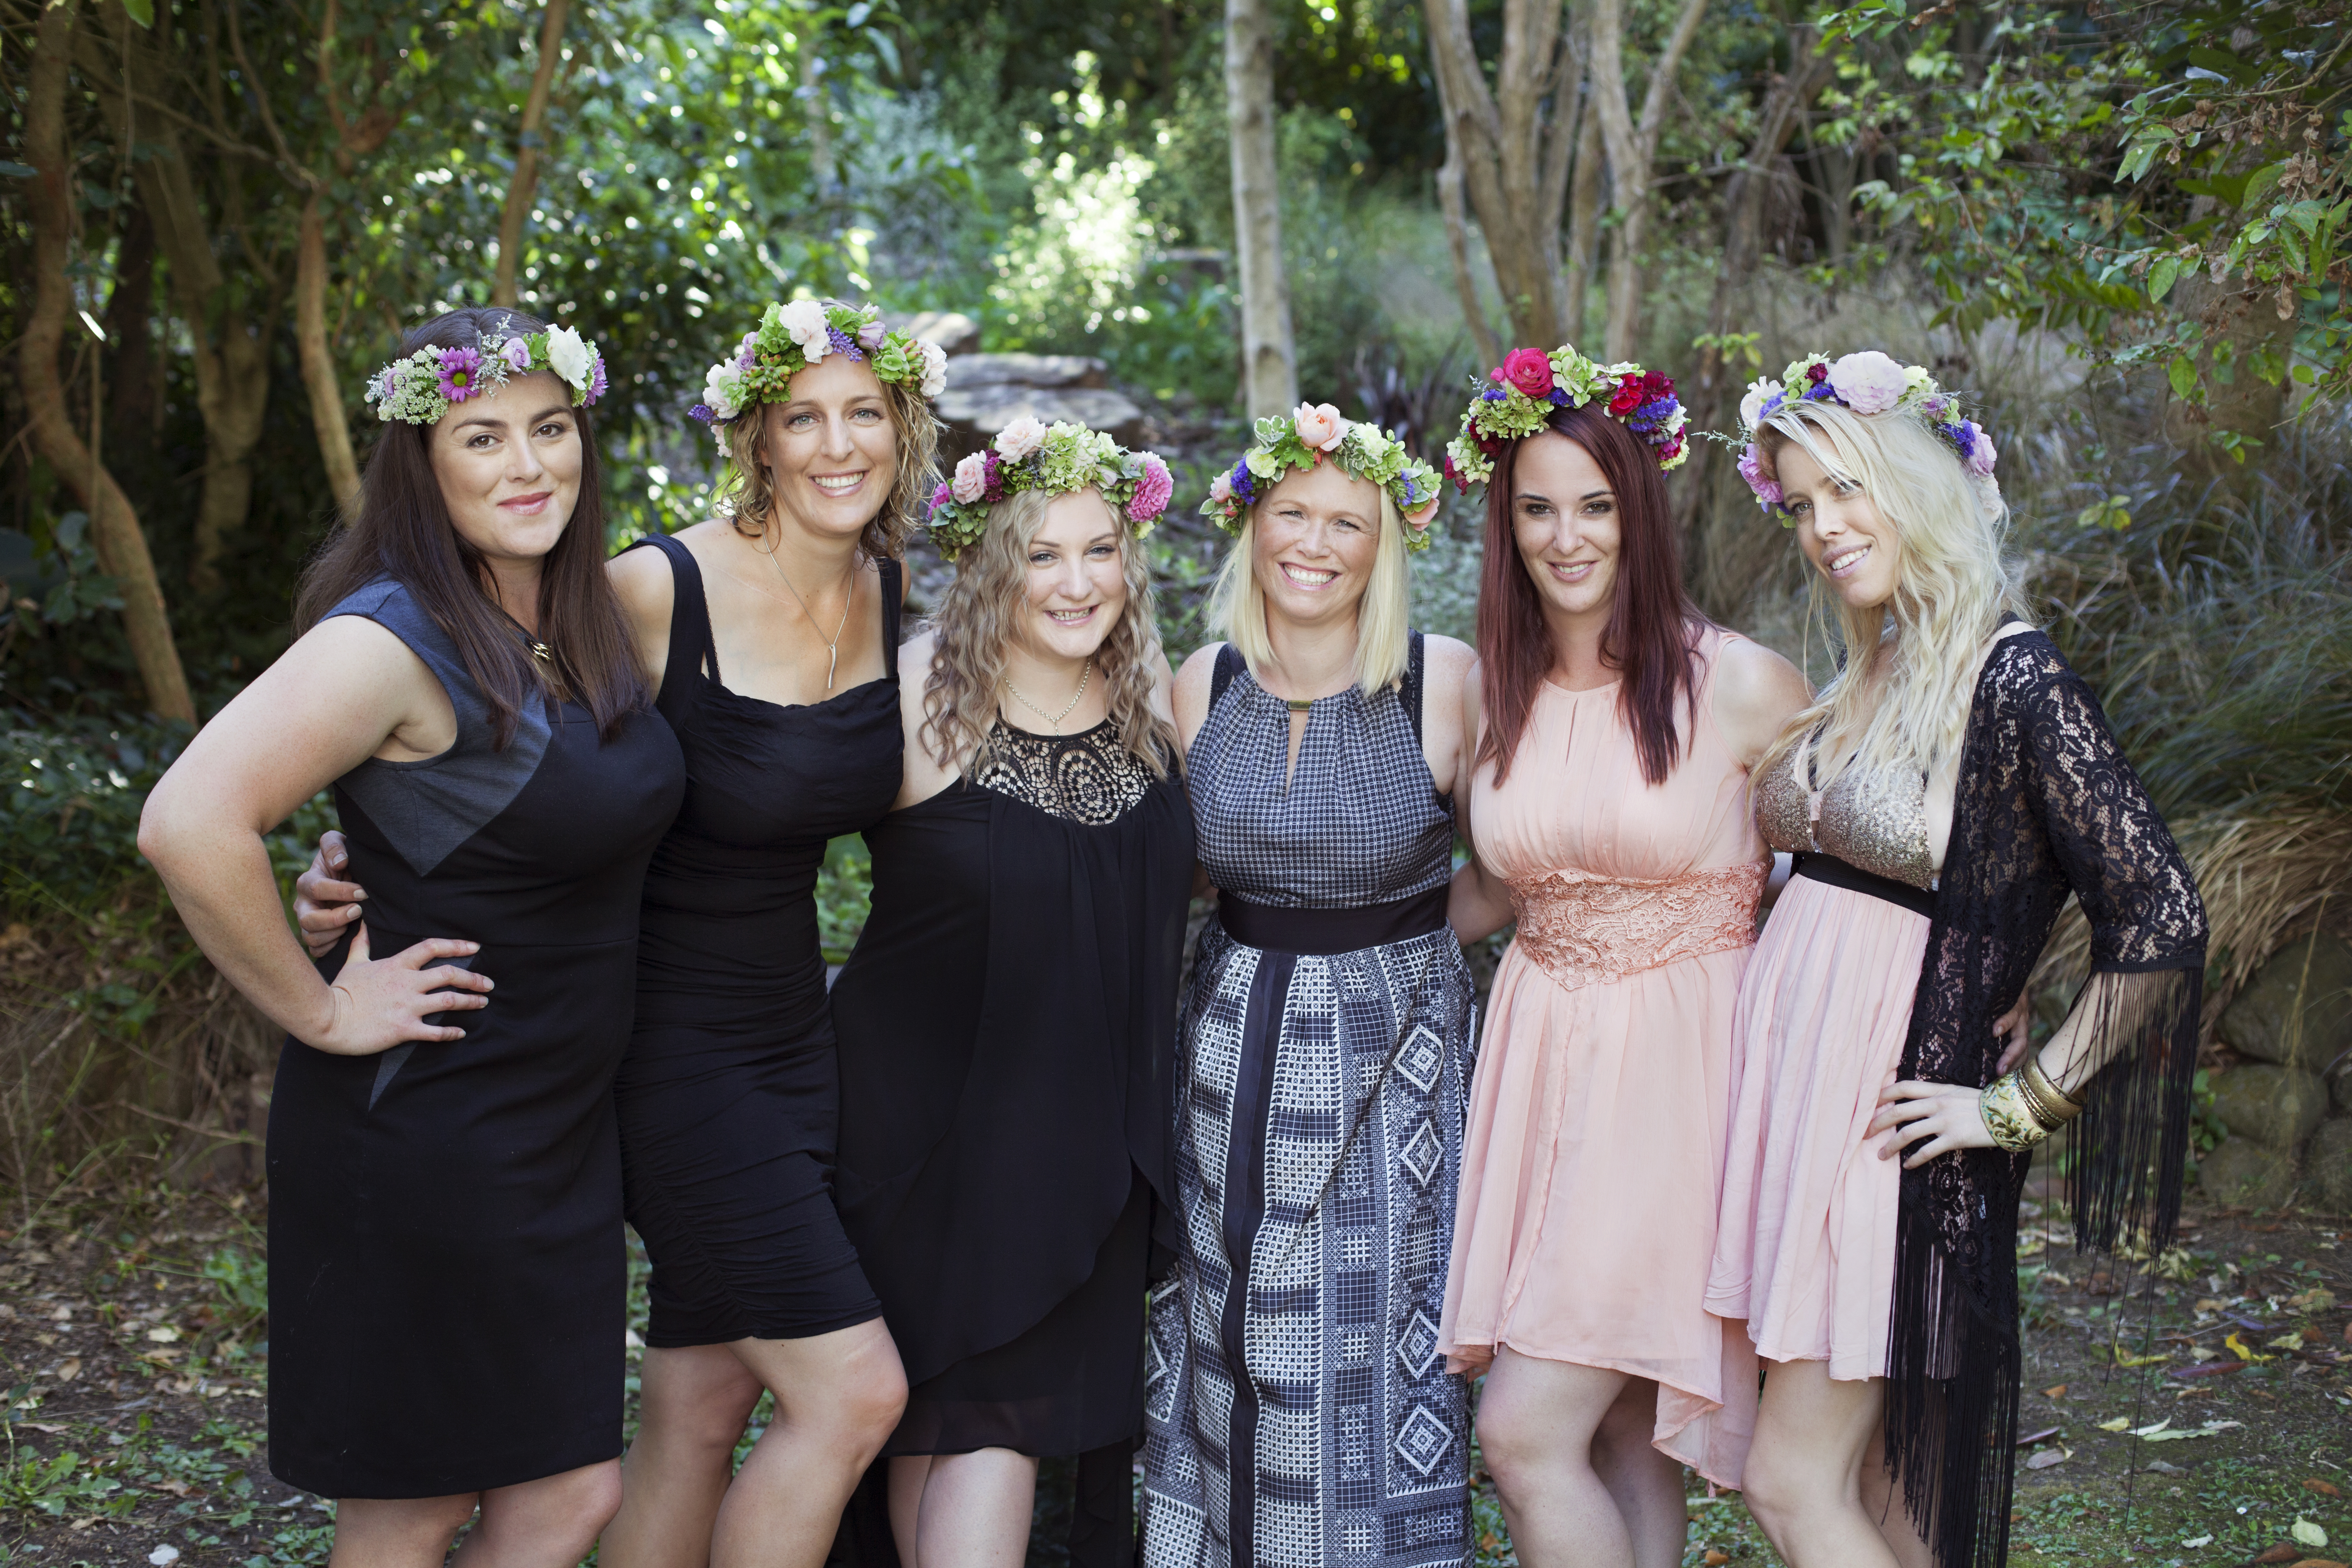 Headpiece Party, Flower Crown 1